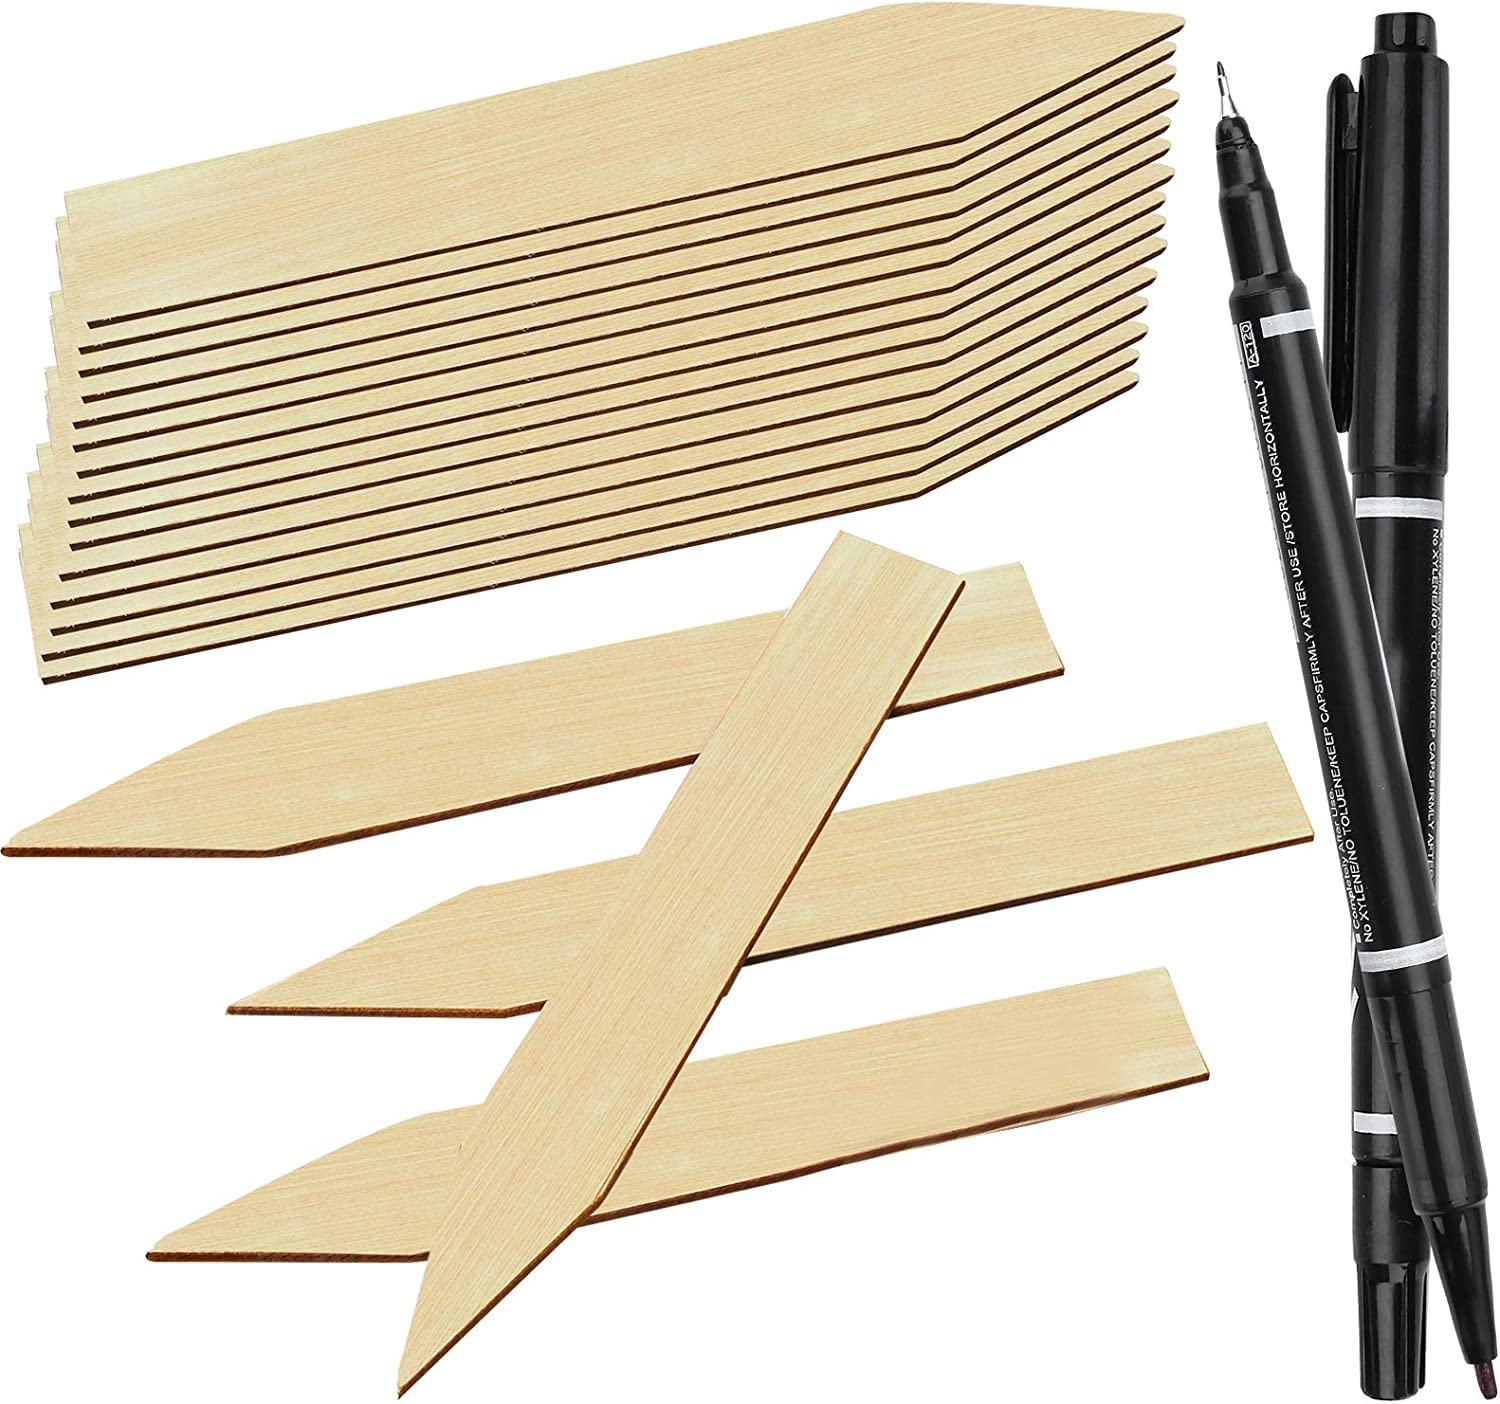 JatilEr 56PCS Bamboo Plant Labels with 2 Marker Pen, Pointed Wooden Plant Tags, Natural Garden Markers for House, Garden, Seed Plant Identification(15 X 2 cm)